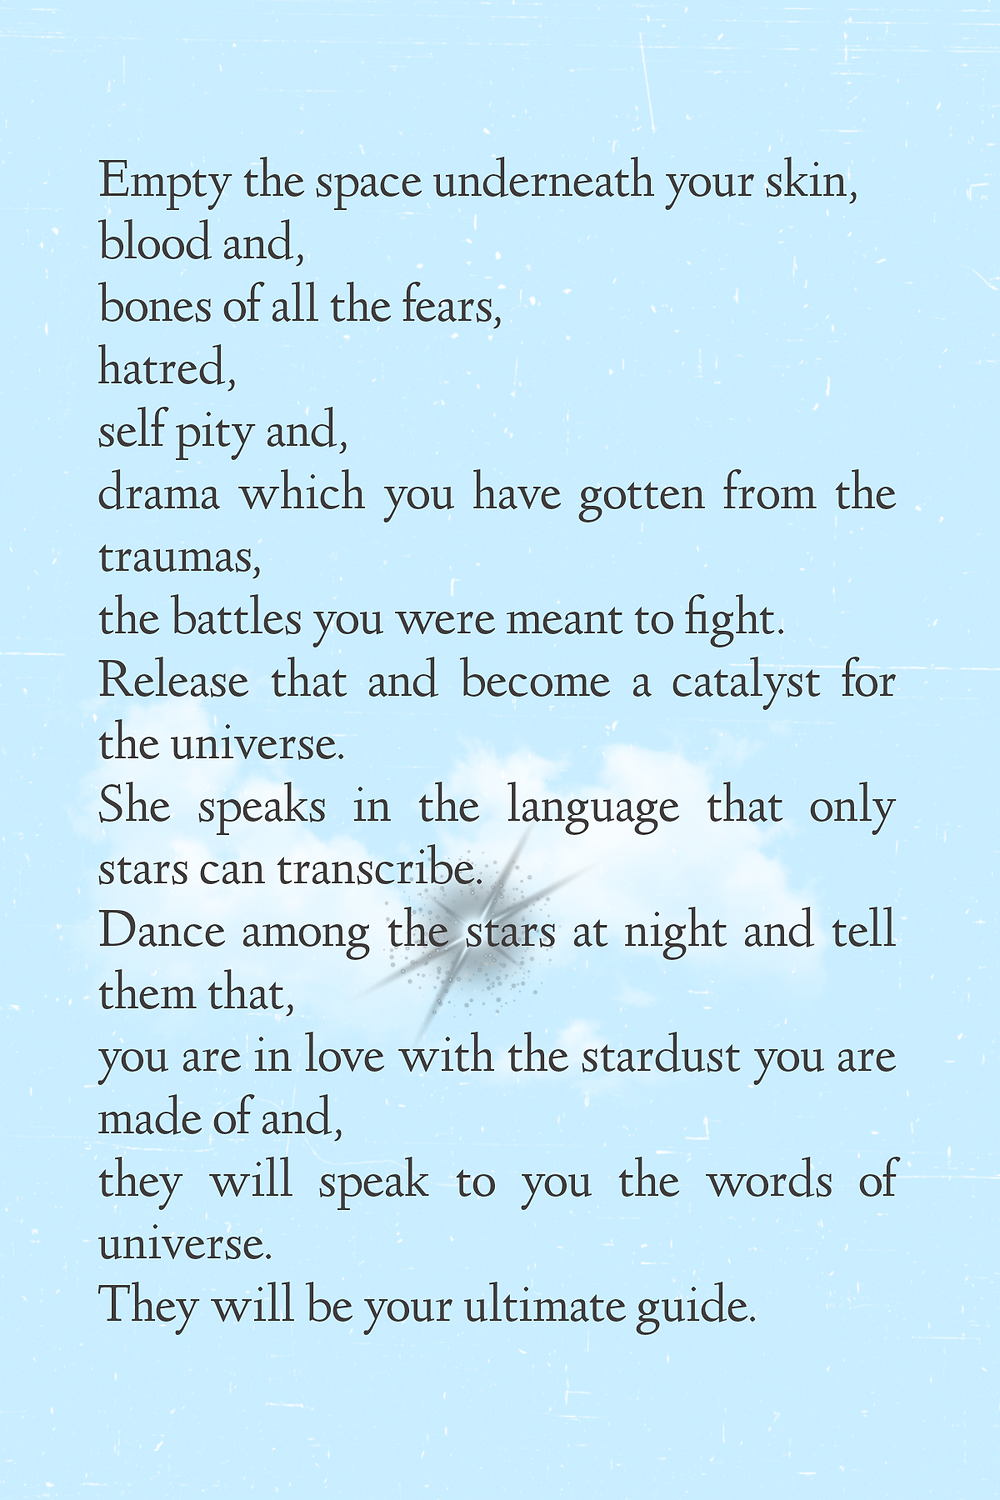 poetry about stars